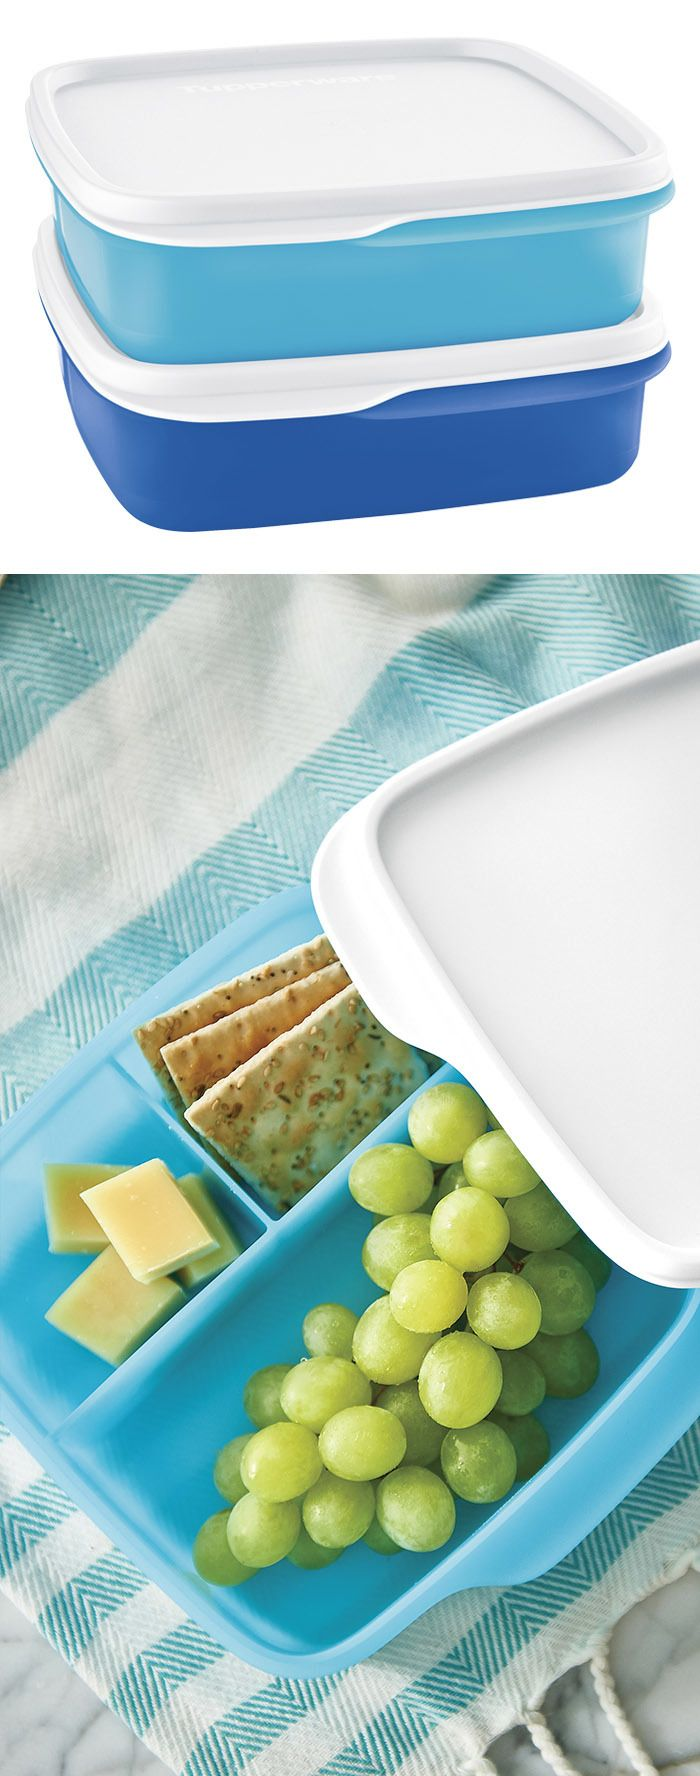 LunchIt™ Containers. Simple snacking at home or on the go